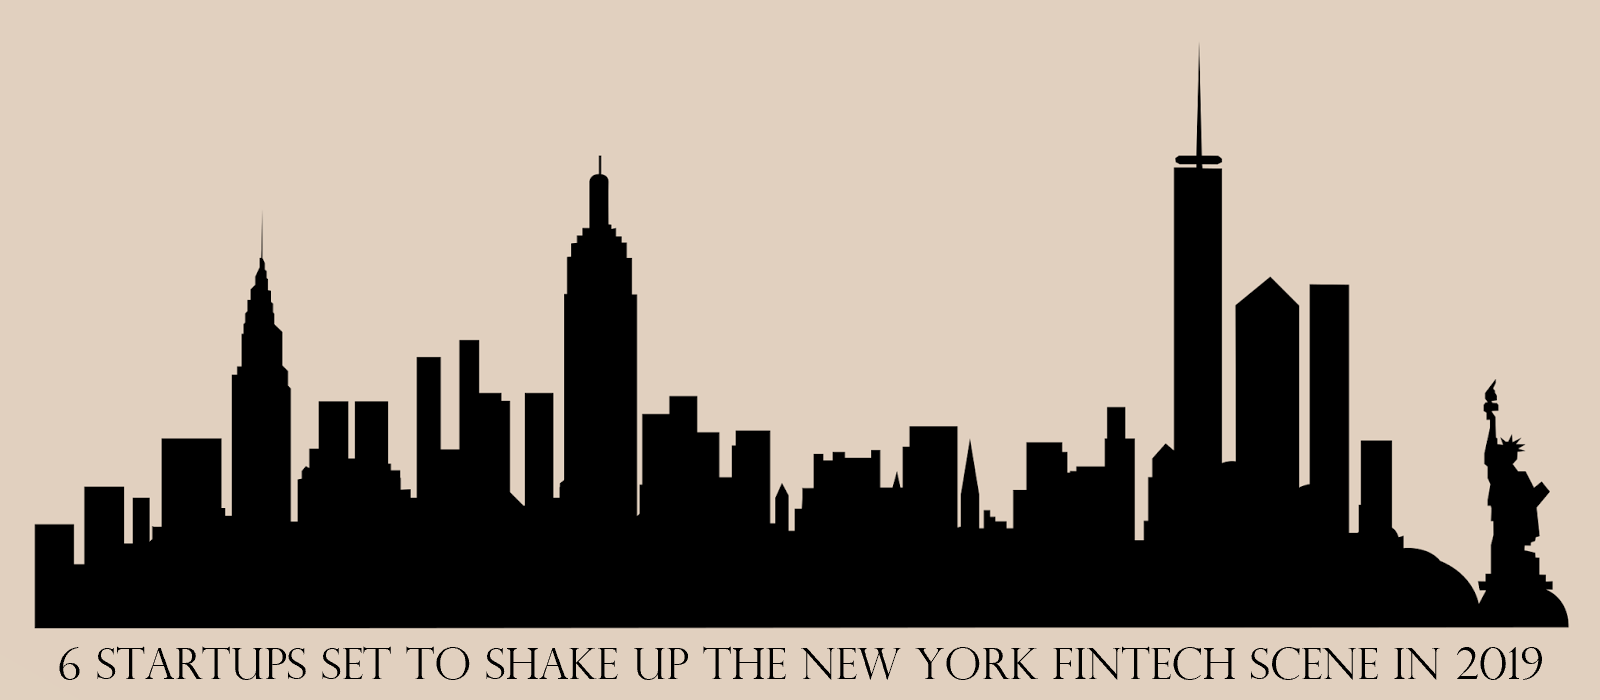 6 Startups Set to Shake Up the New York FinTech Scene in 2019